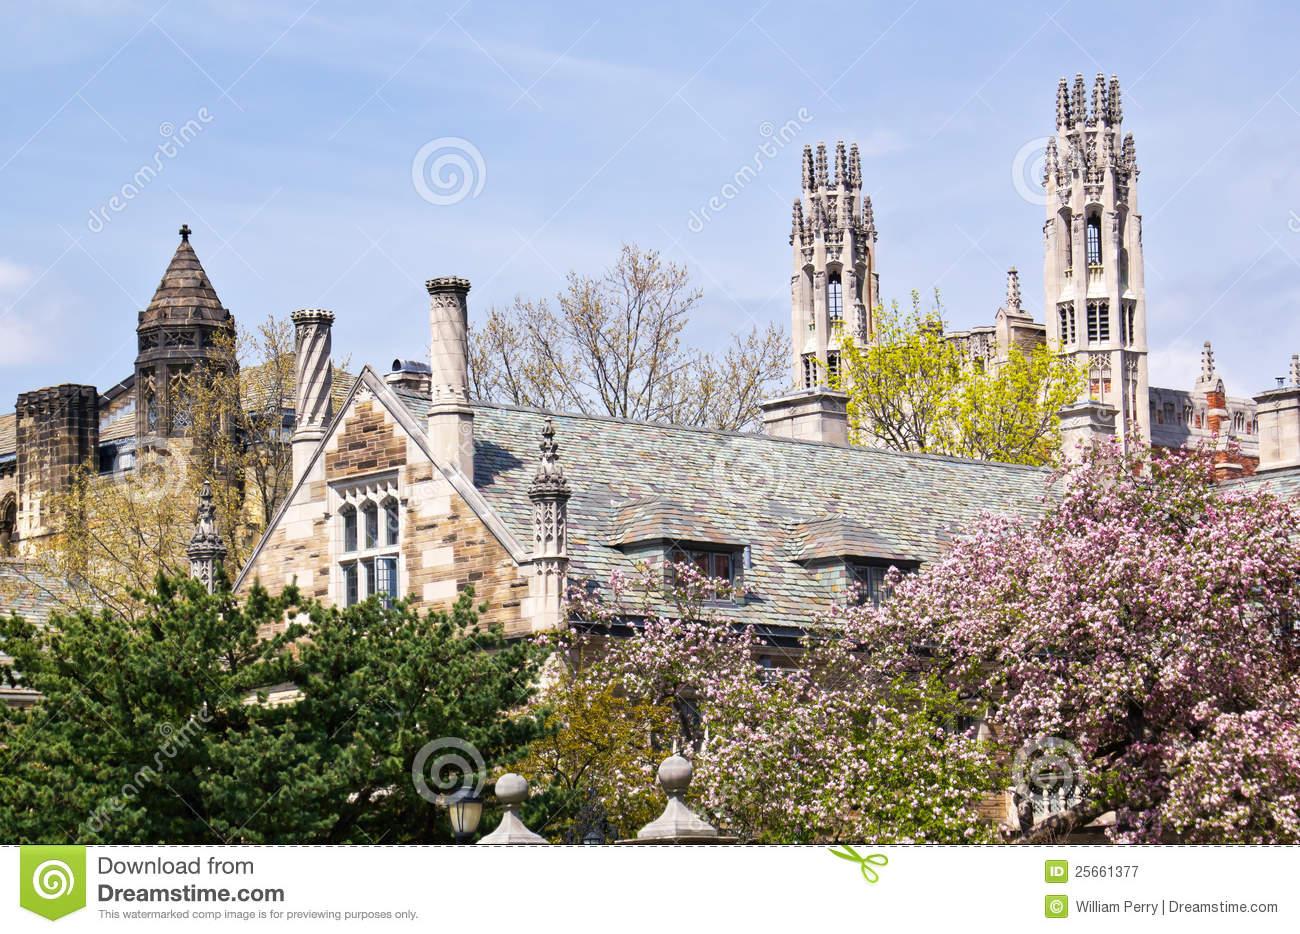 Edifício esterlino da lei da Universidade de Yale